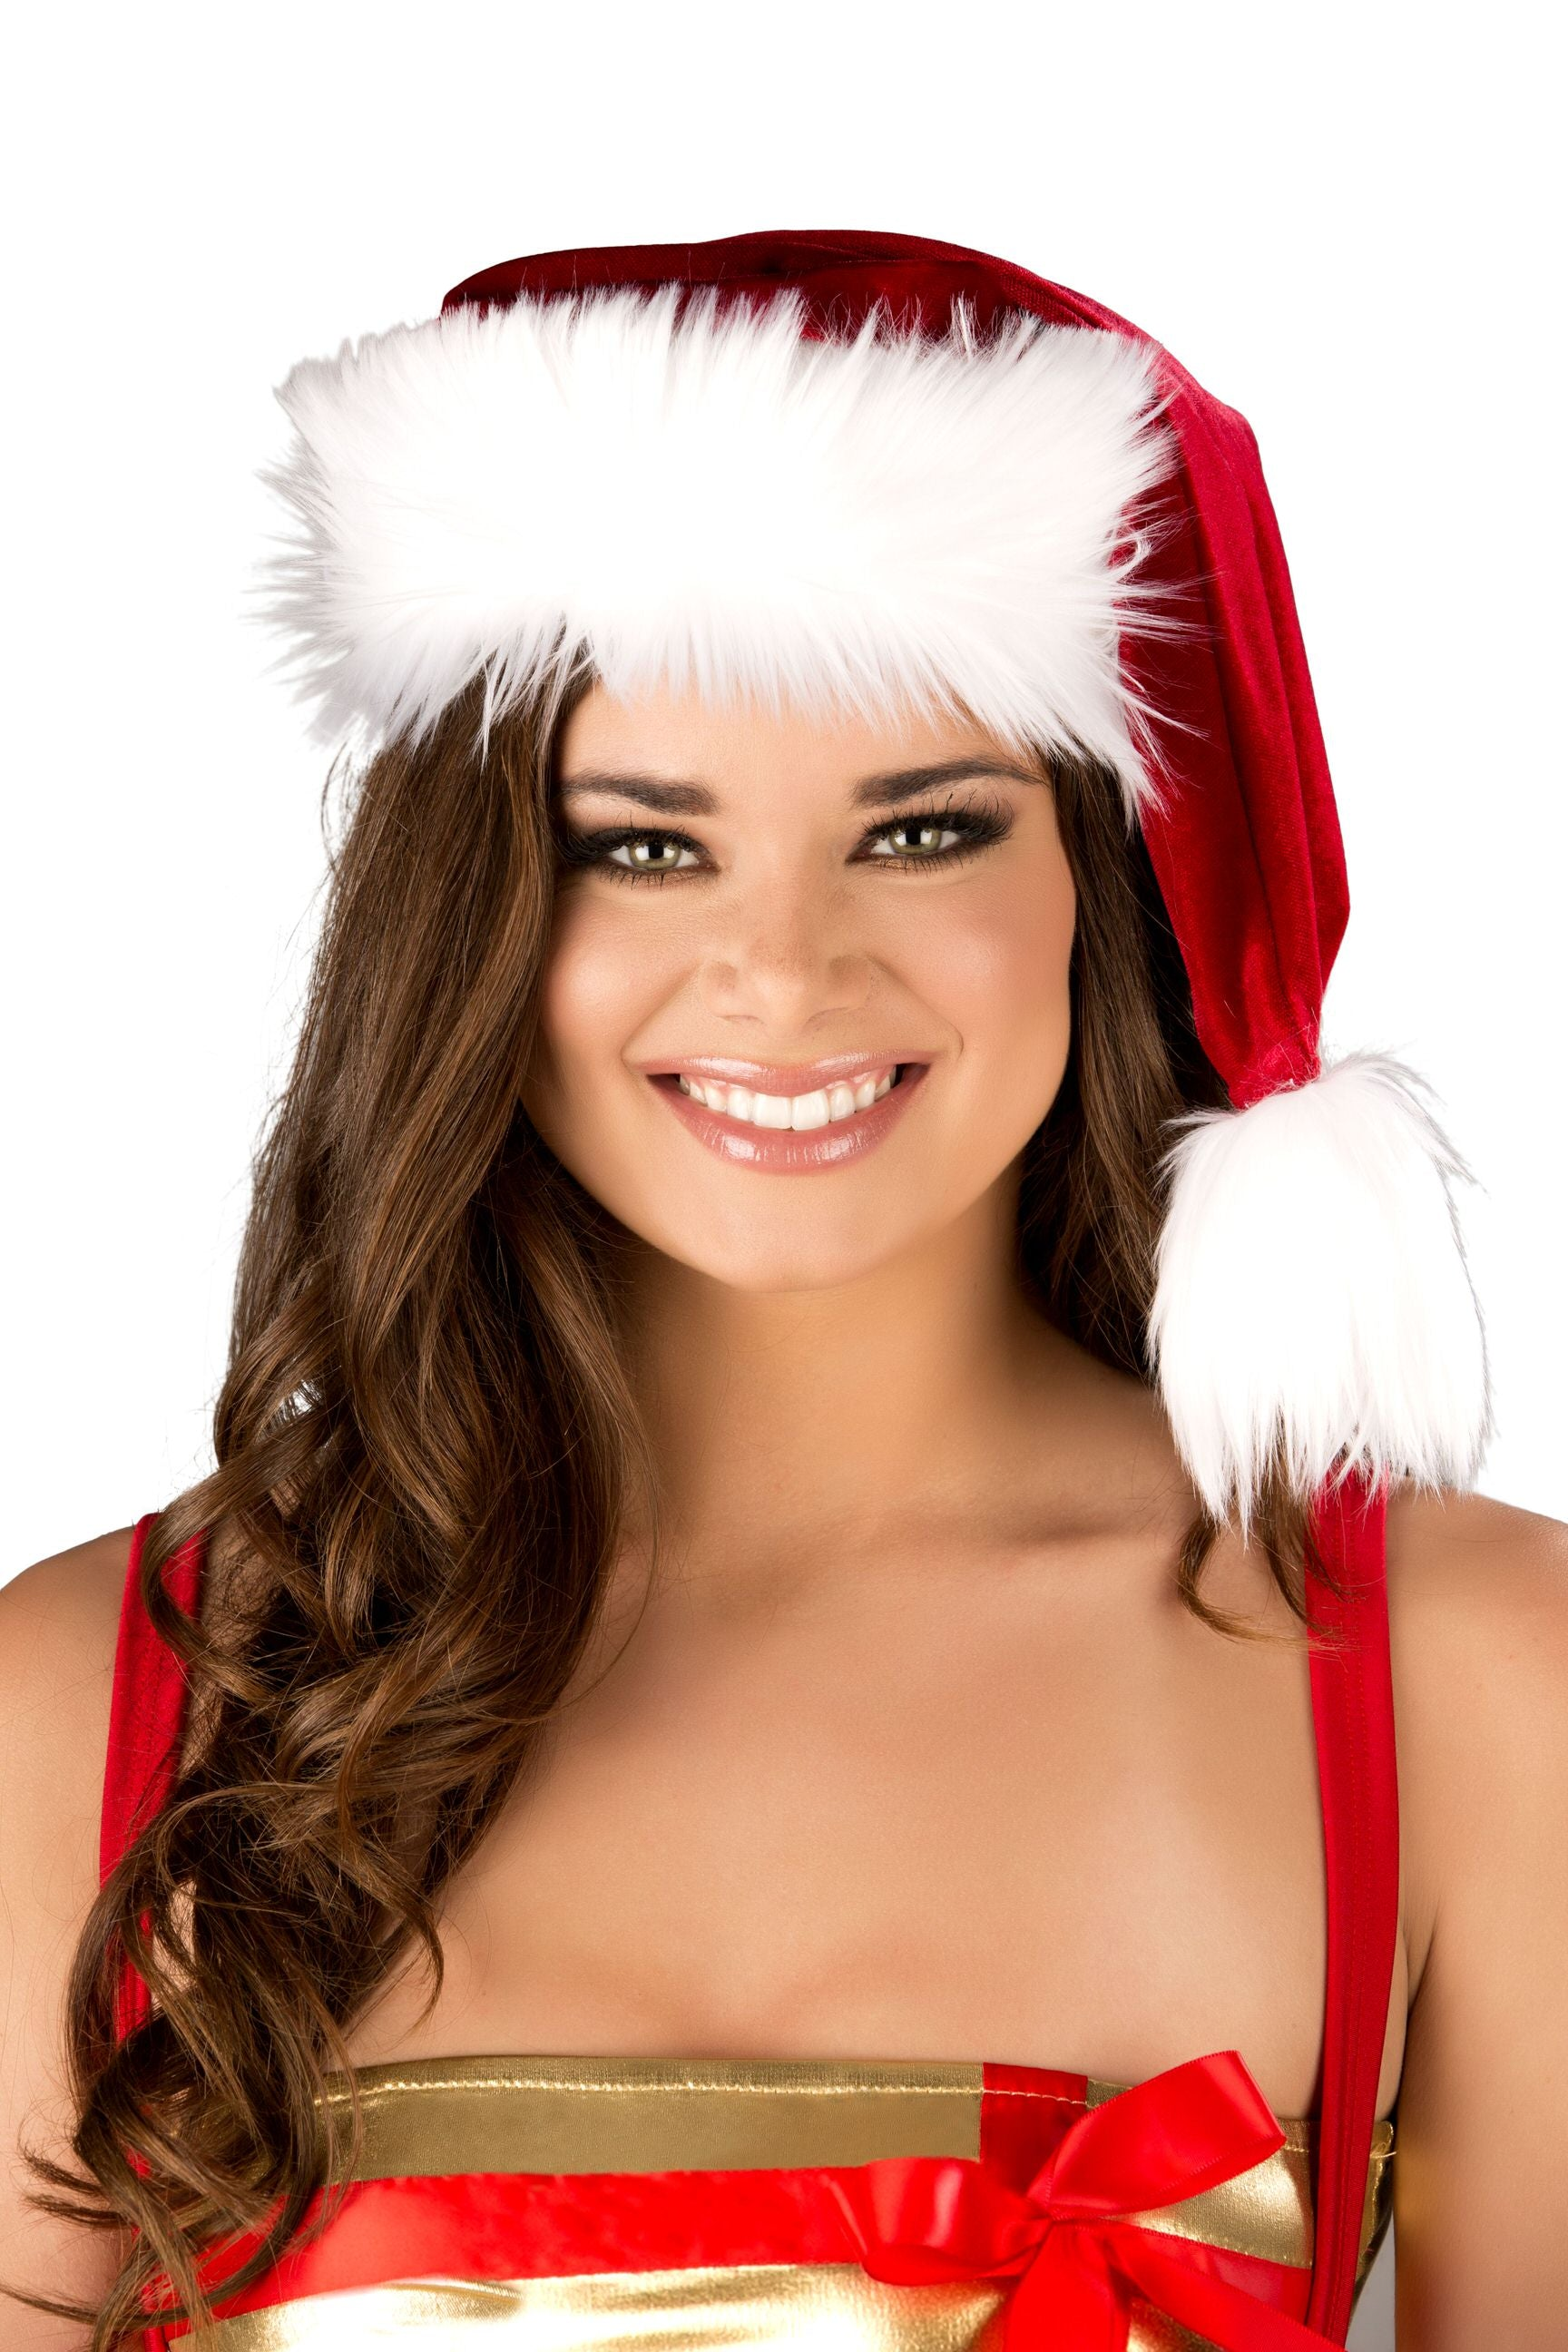 Buy Red and White Fur Trimmed Christmas Hat from Rave Fix for $9.75 with Same Day Shipping Designed by Roma Costume C120-AS-O/S